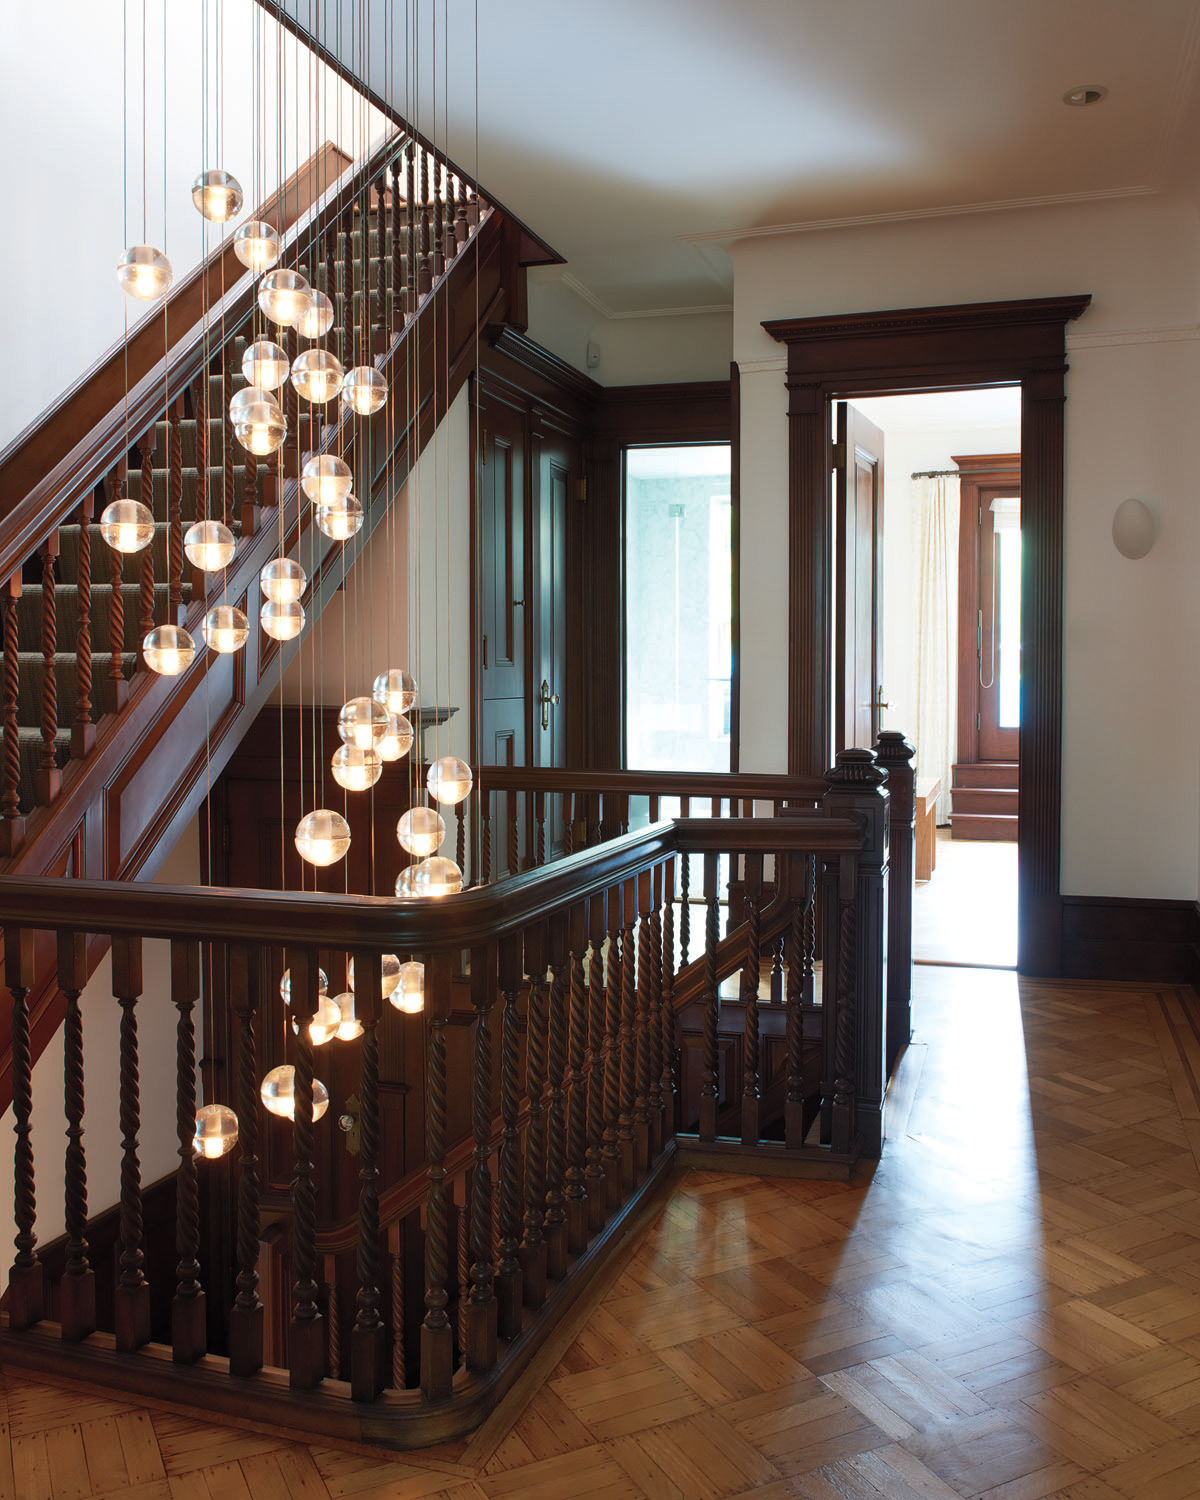 Brooklyn architects carefully restored brownstone staircase